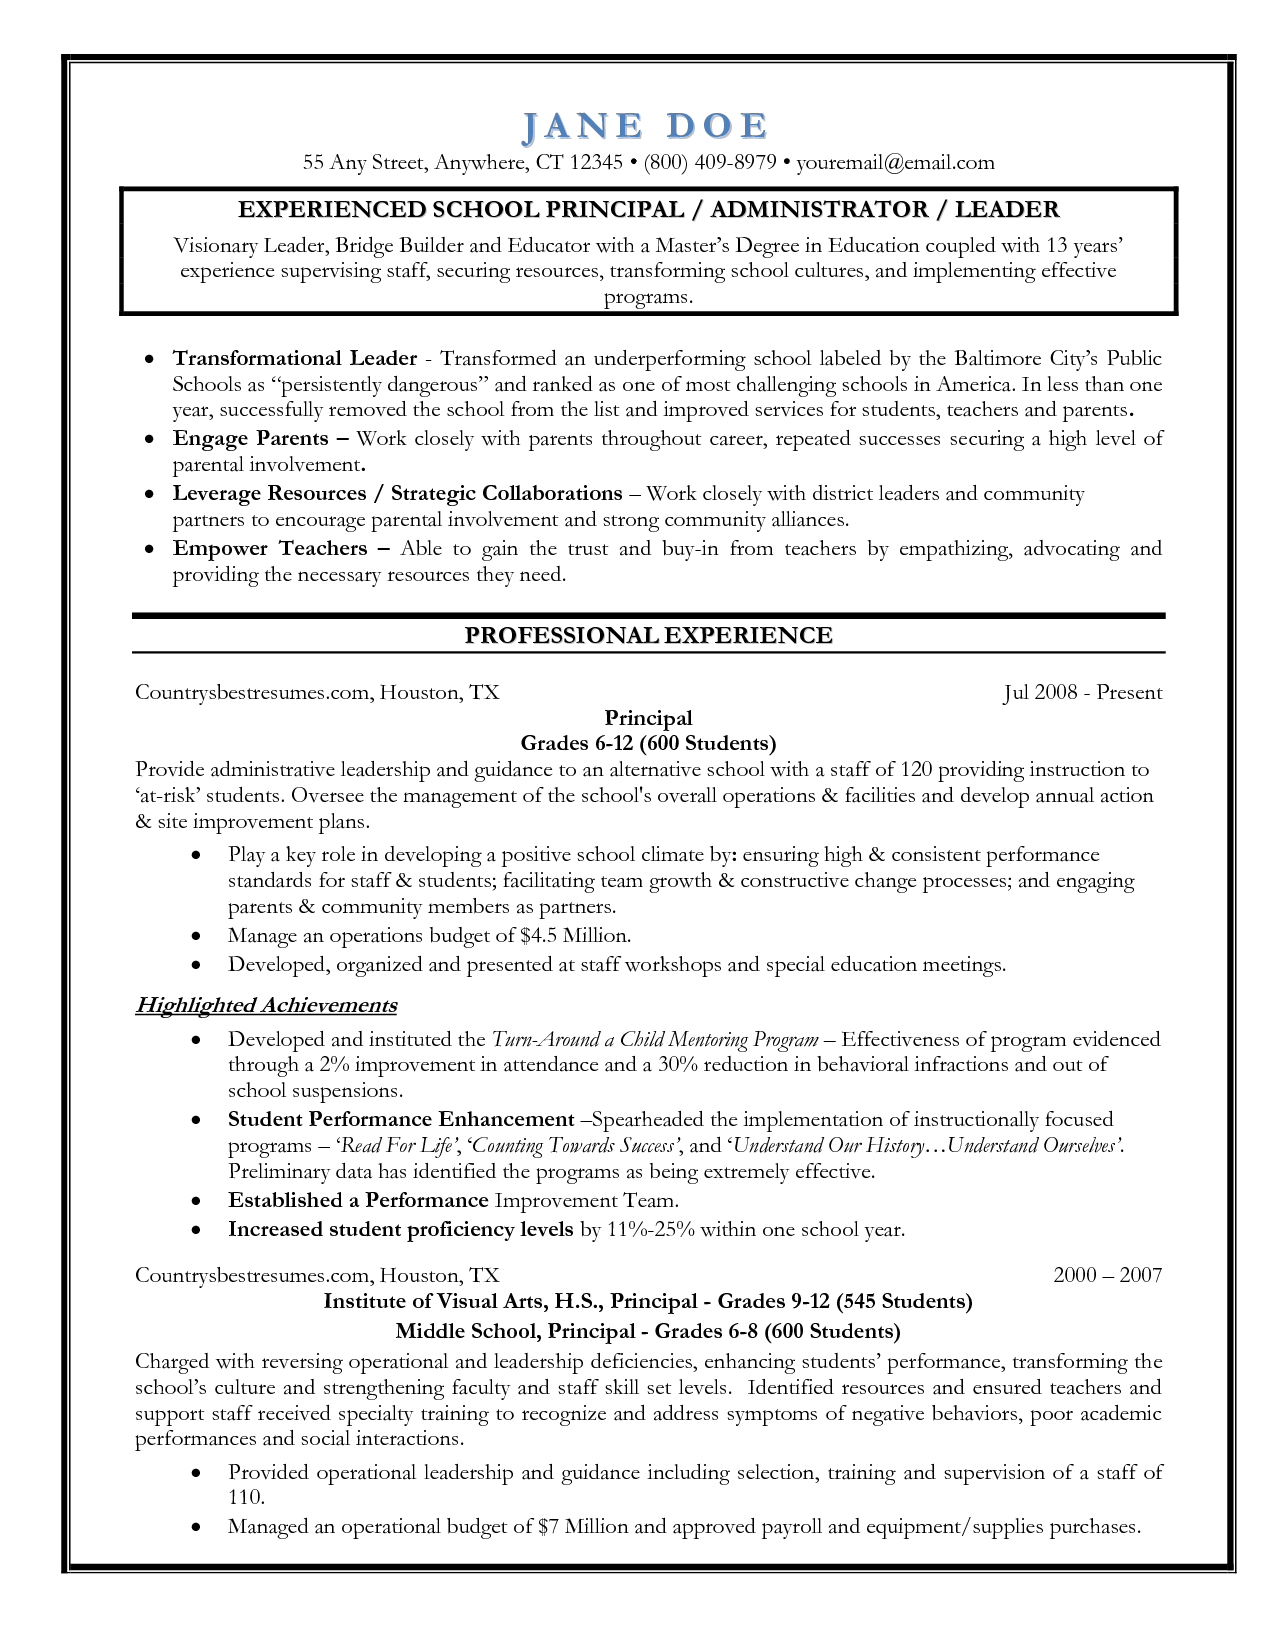 Teacher Resume Samples Entrylevel Assistant Principal Resume Templates  Senior Educator